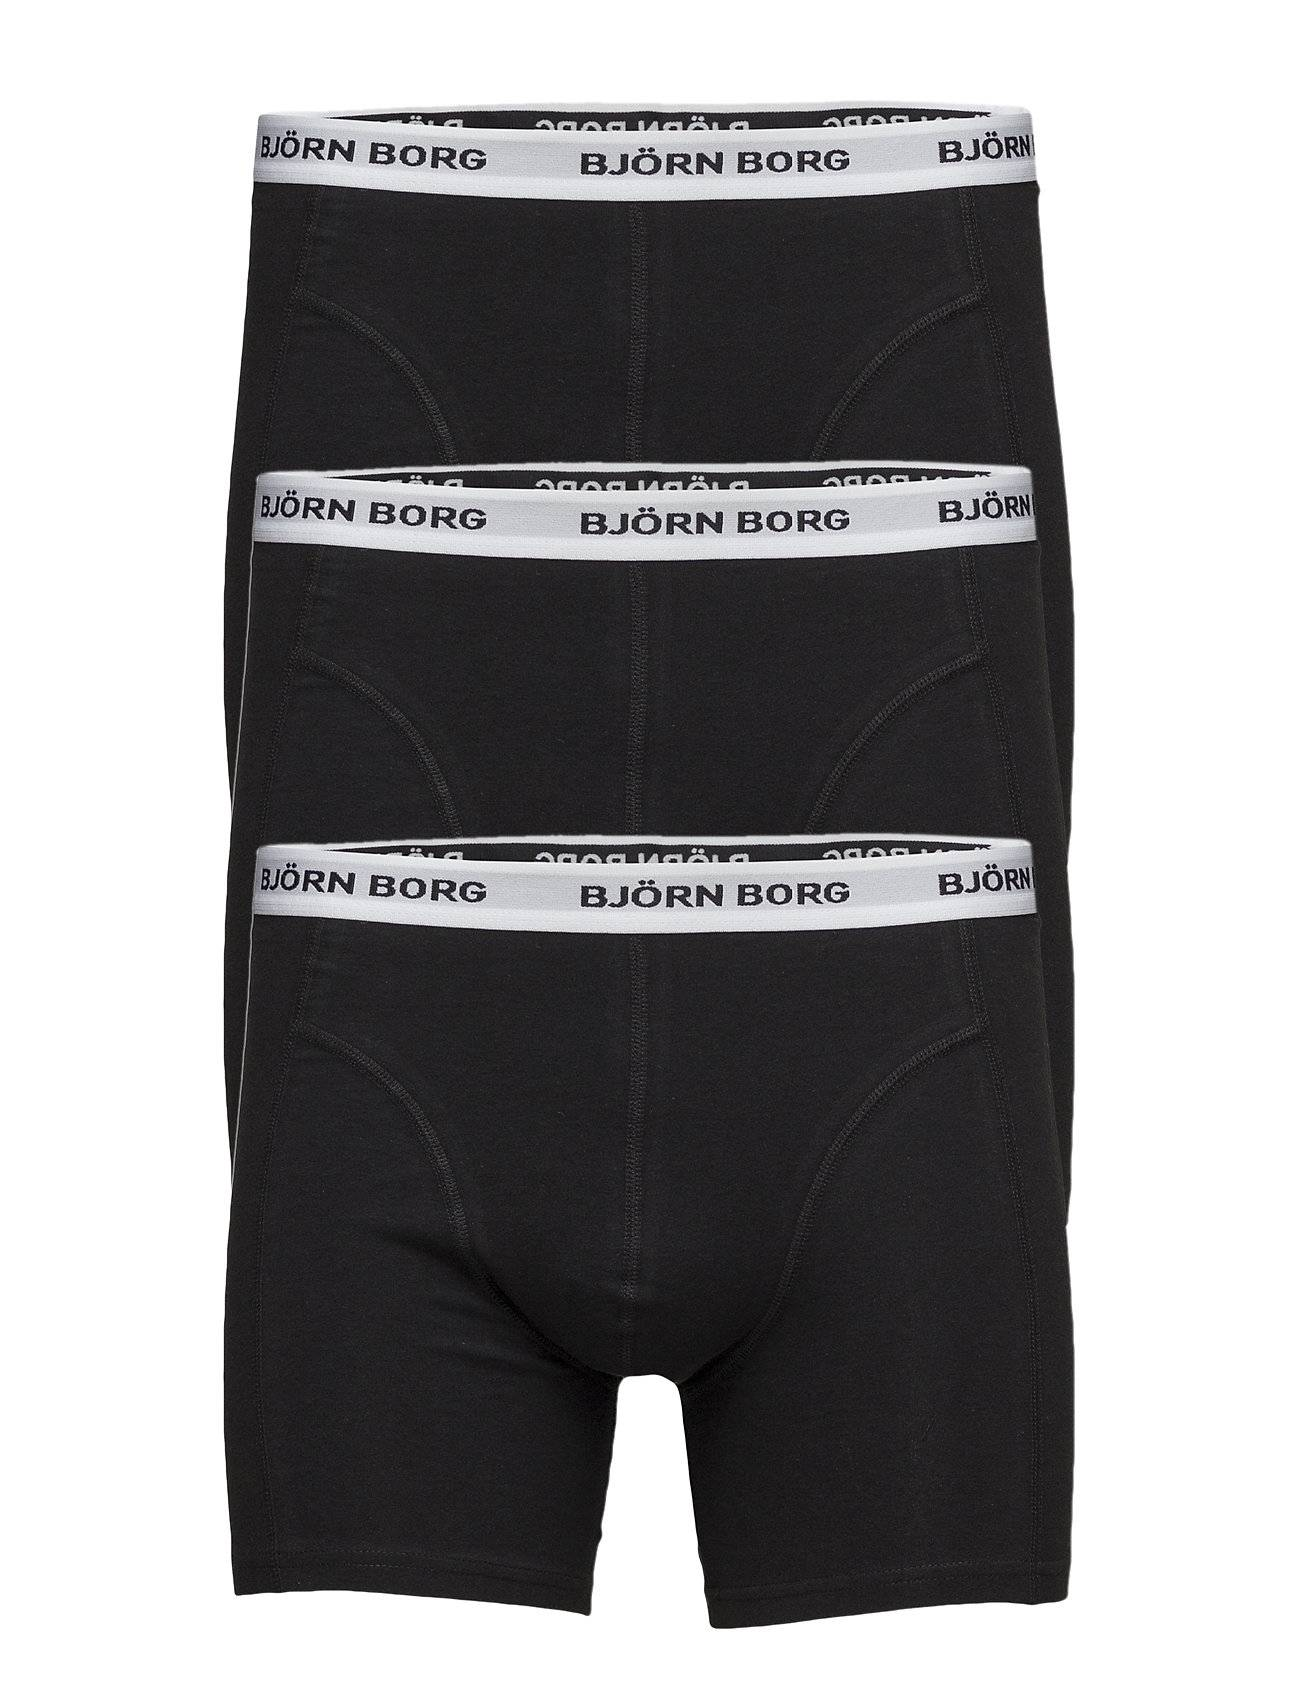 Björn Borg Shorts Noos Contrast Solids 3p